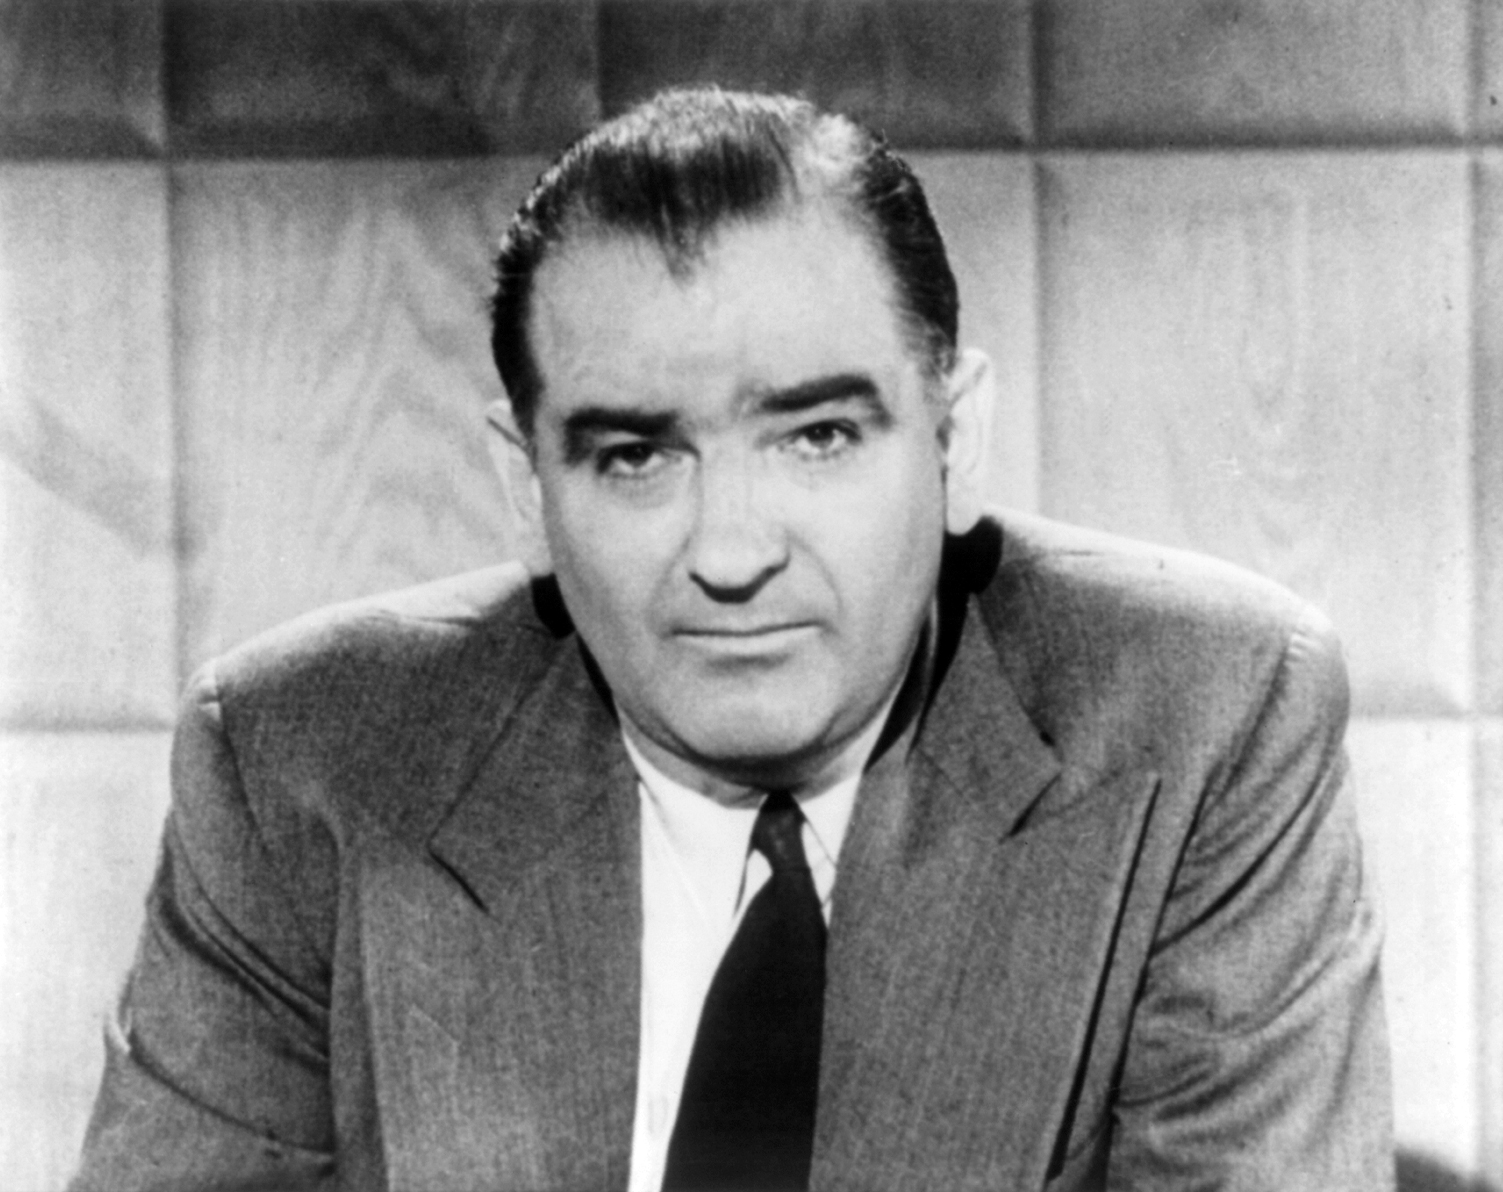 https://upload.wikimedia.org/wikipedia/commons/f/fa/Joseph_McCarthy.jpg